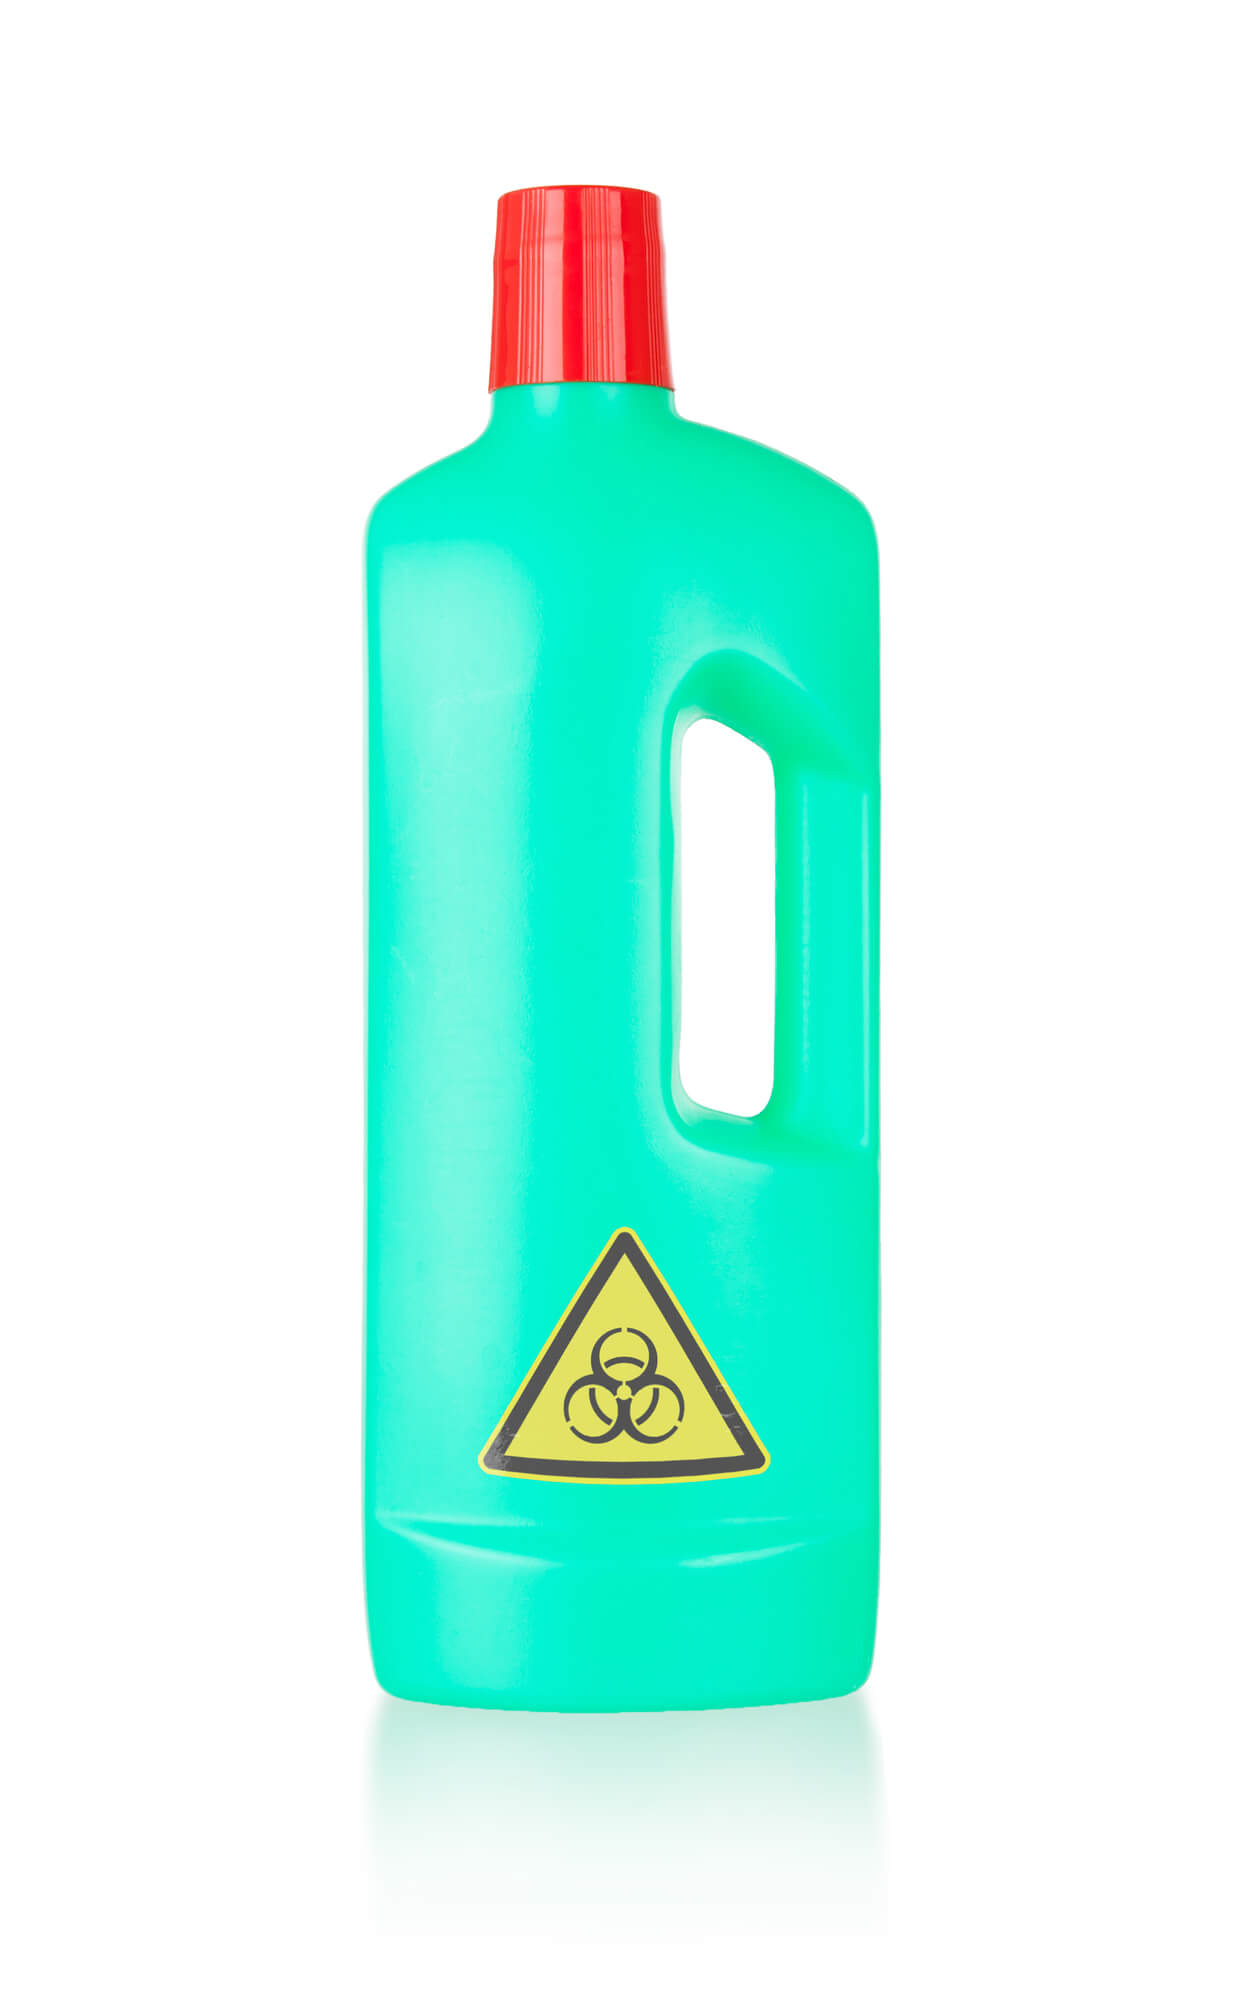 bottle of caustic cleaner with danger symbol